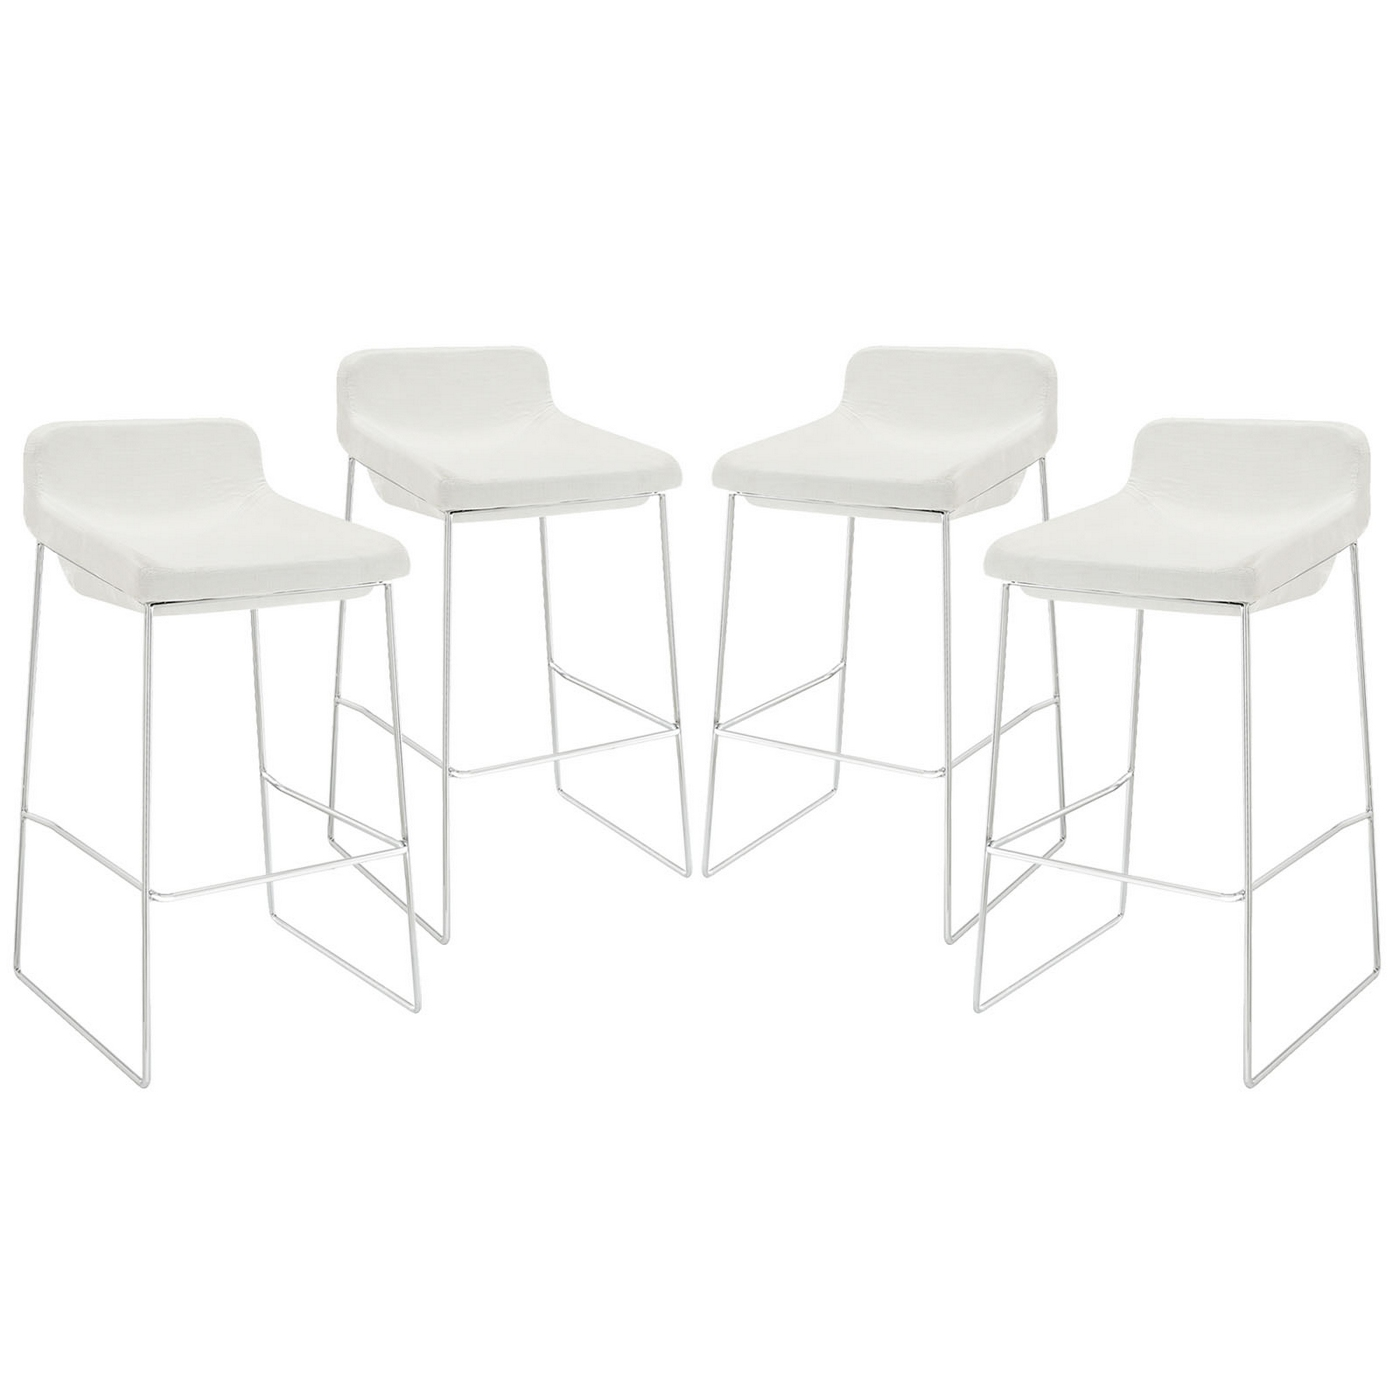 Set Of 4 Garner Contemporary Upholstered Bar Stool With  : set of 4 garner contemporary upholstered bar stool with chrome frame white 2 from shopfactorydirect.com size 1400 x 1400 jpeg 174kB